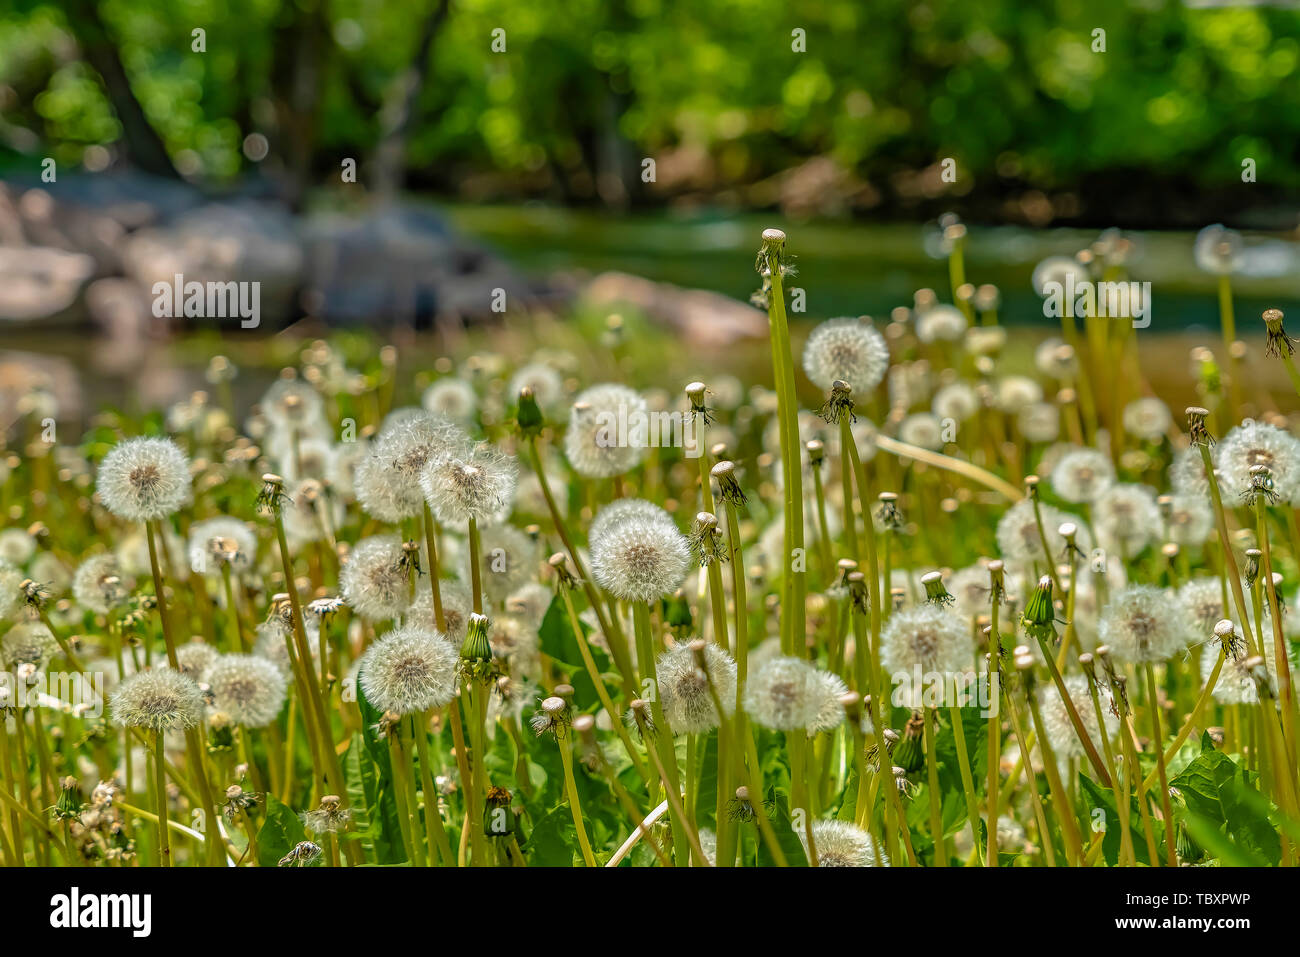 Close up of dandelions with white flowers and bright green stems on a sunny day - Stock Image